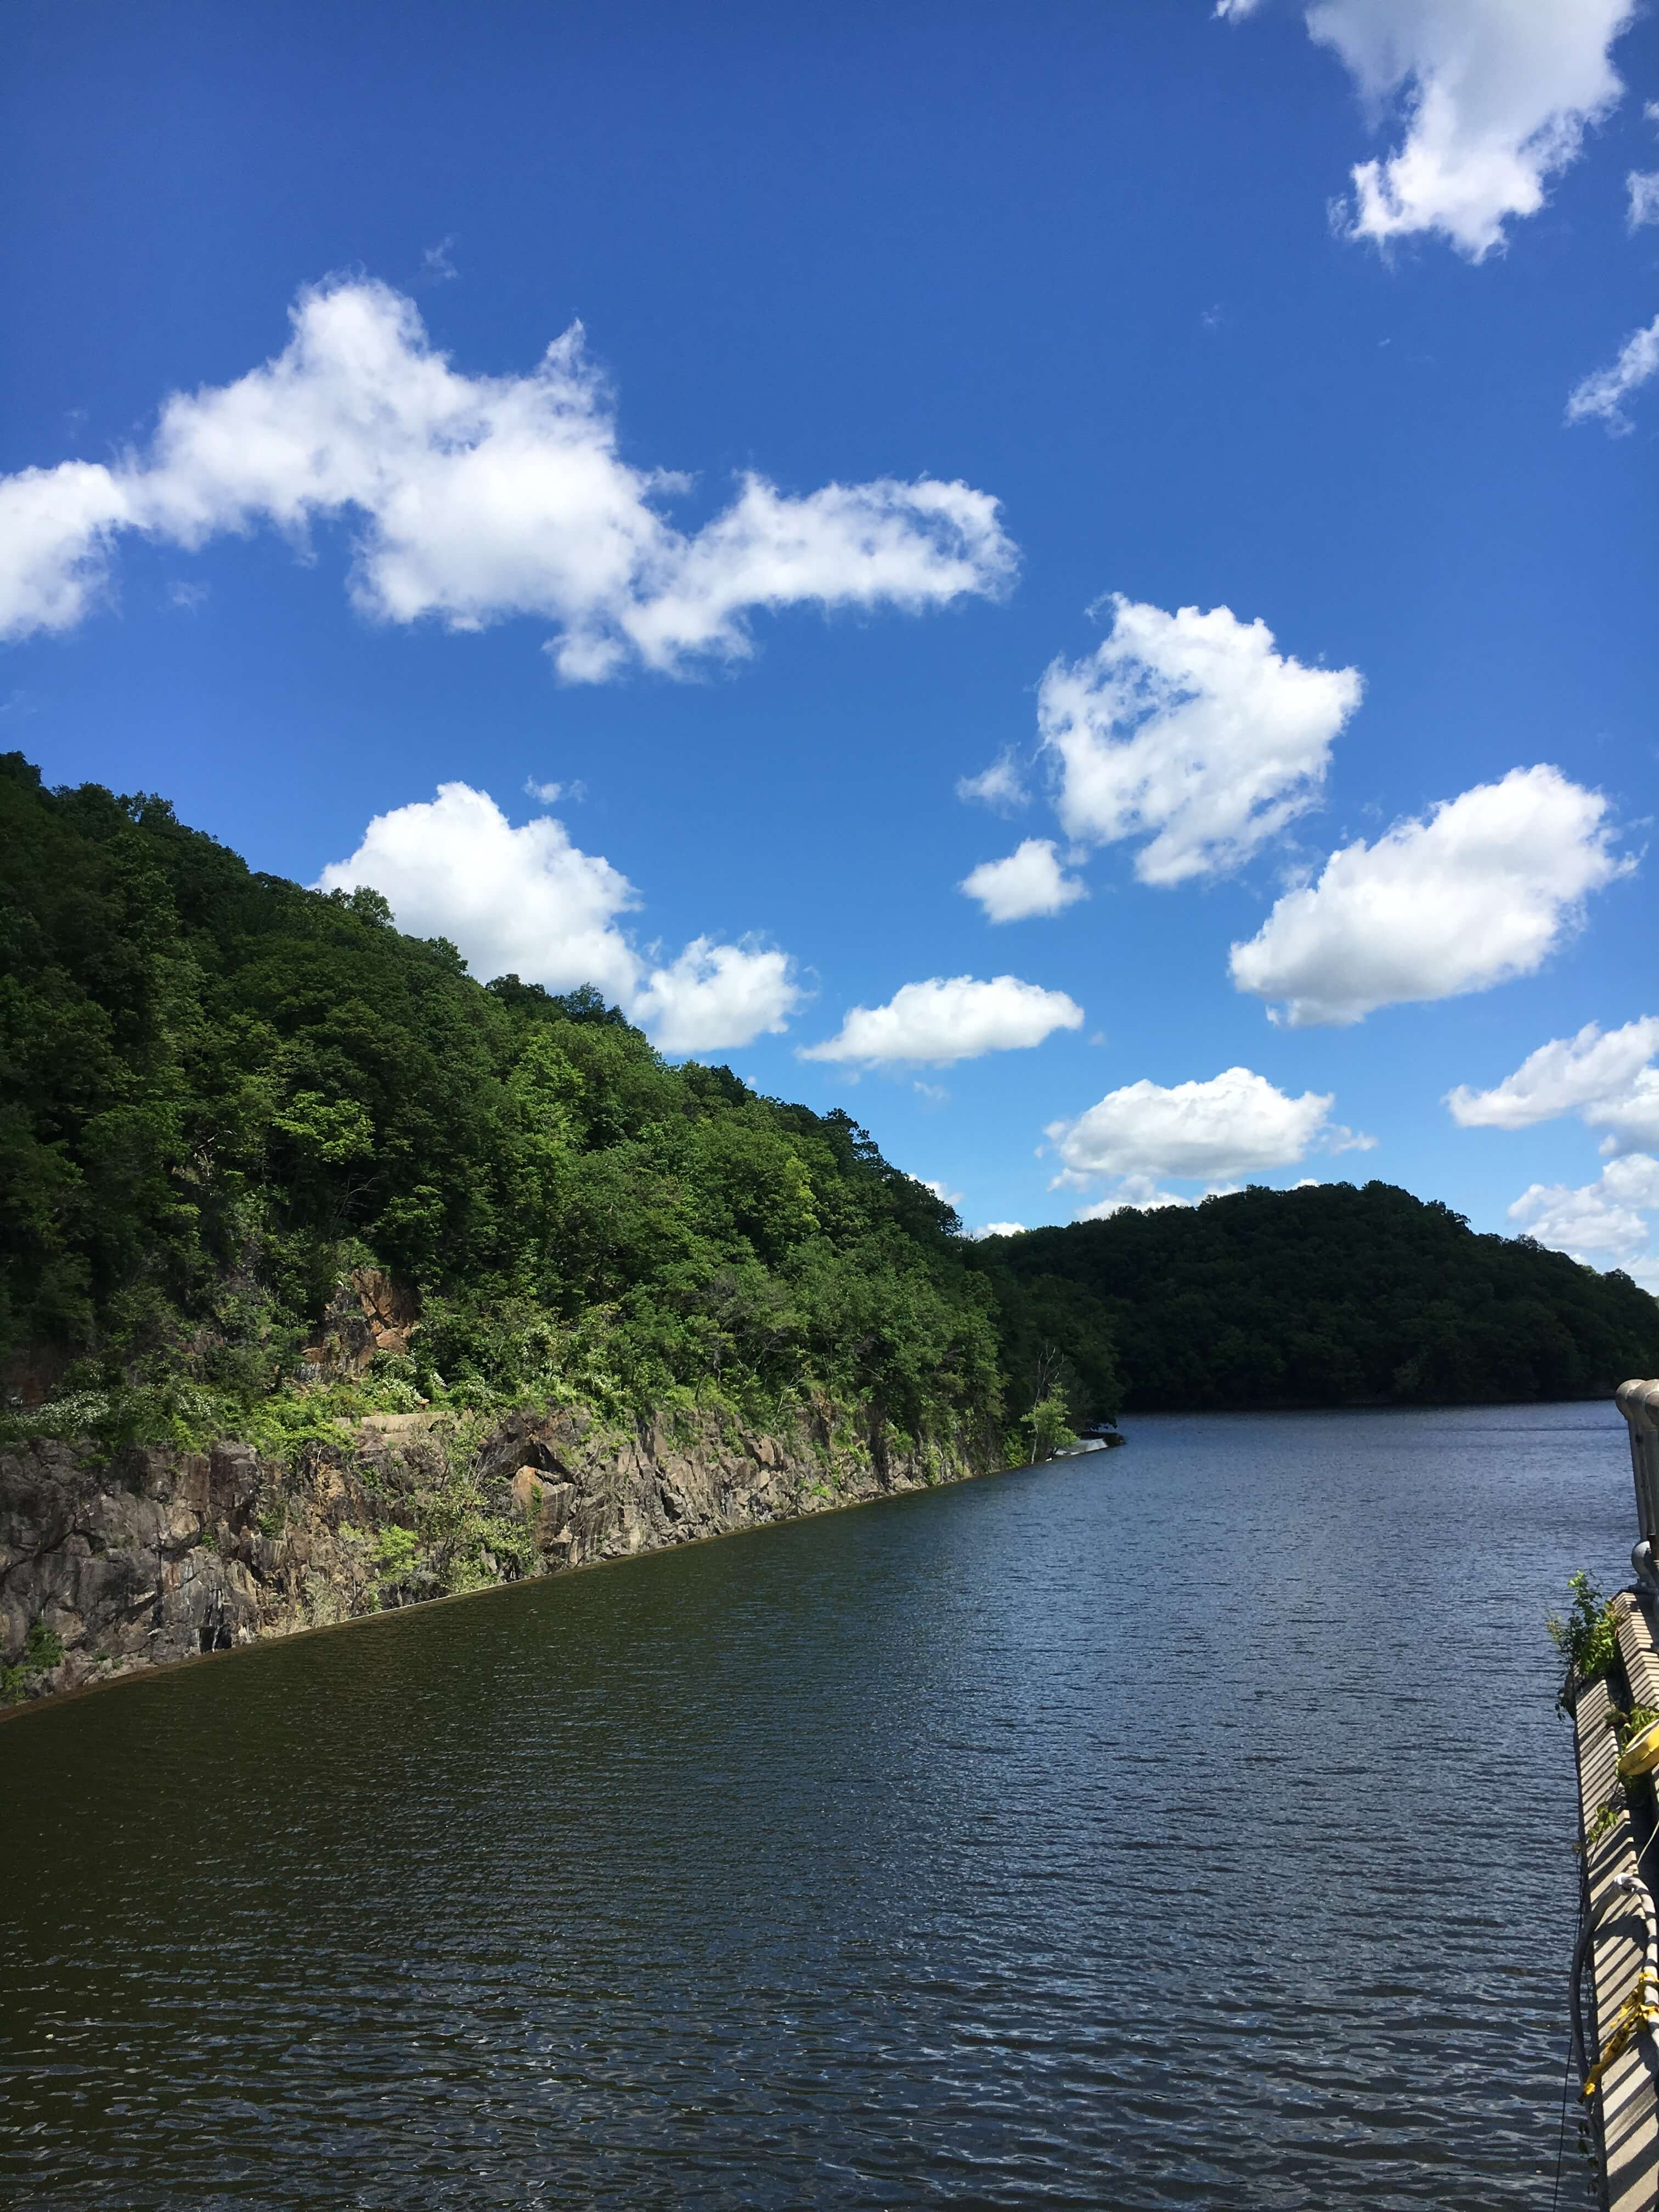 amazing croton river gorge